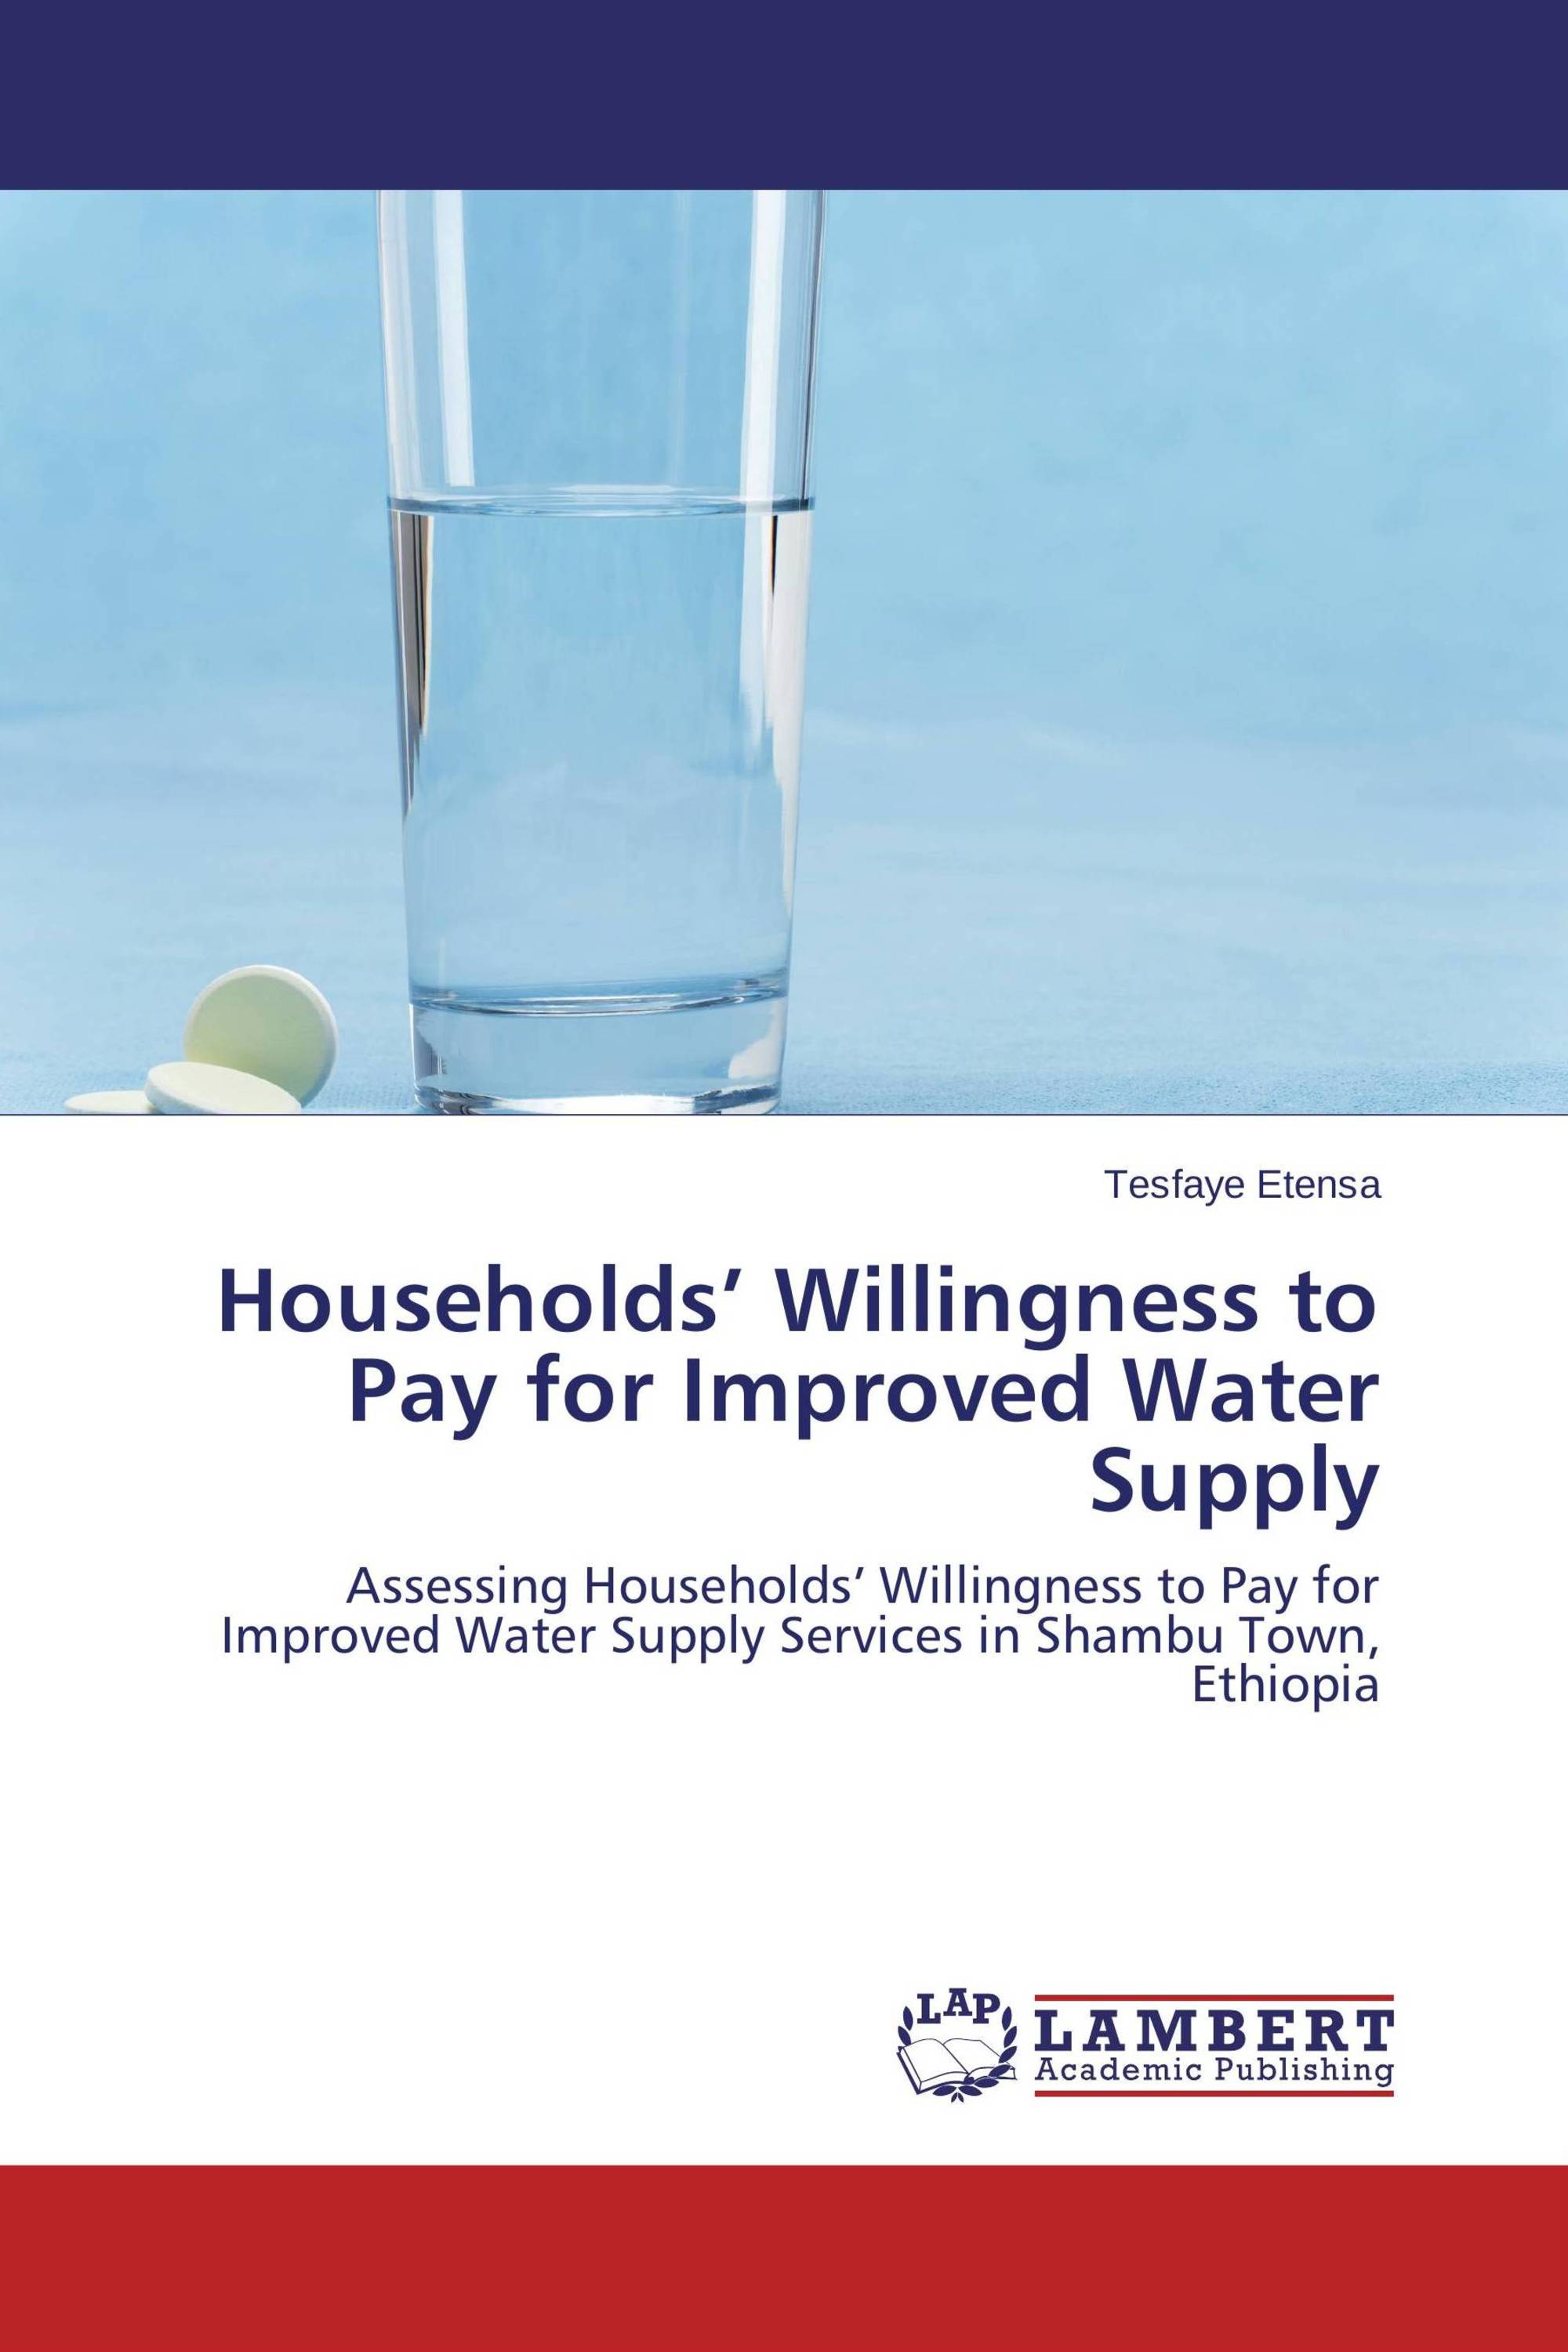 Households' Willingness to Pay for Improved Water Supply